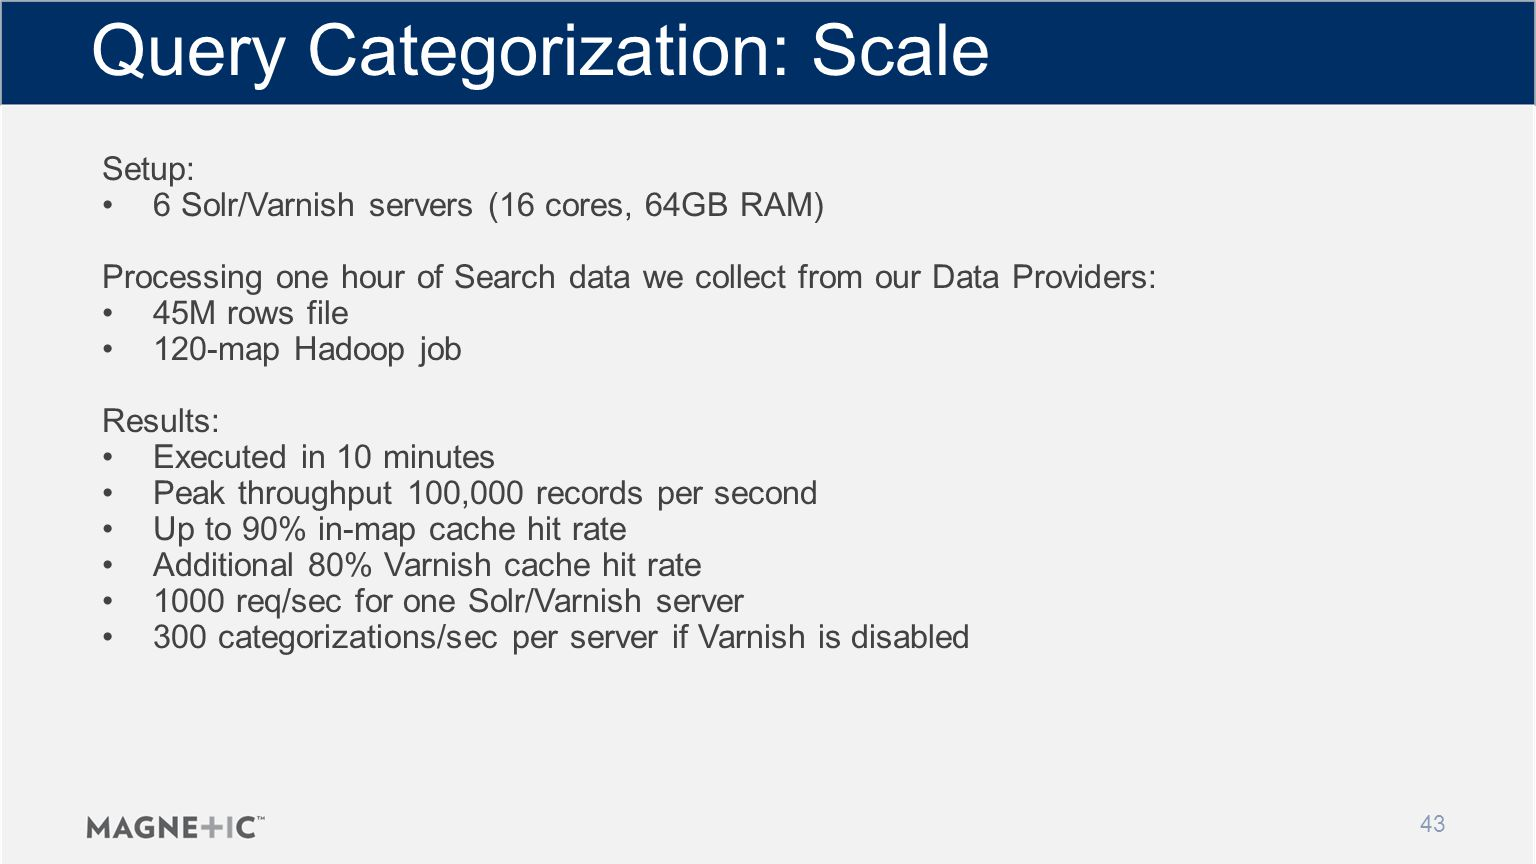 Setup: 6 Solr/Varnish servers (16 cores, 64GB RAM) Processing one hour of Search data we collect from our Data Providers: 45M rows file 120-map Hadoop job Results: Executed in 10 minutes Peak throughput 100,000 records per second Up to 90% in-map cache hit rate Additional 80% Varnish cache hit rate 1000 req/sec for one Solr/Varnish server 300 categorizations/sec per server if Varnish is disabled Query Categorization: Scale 43